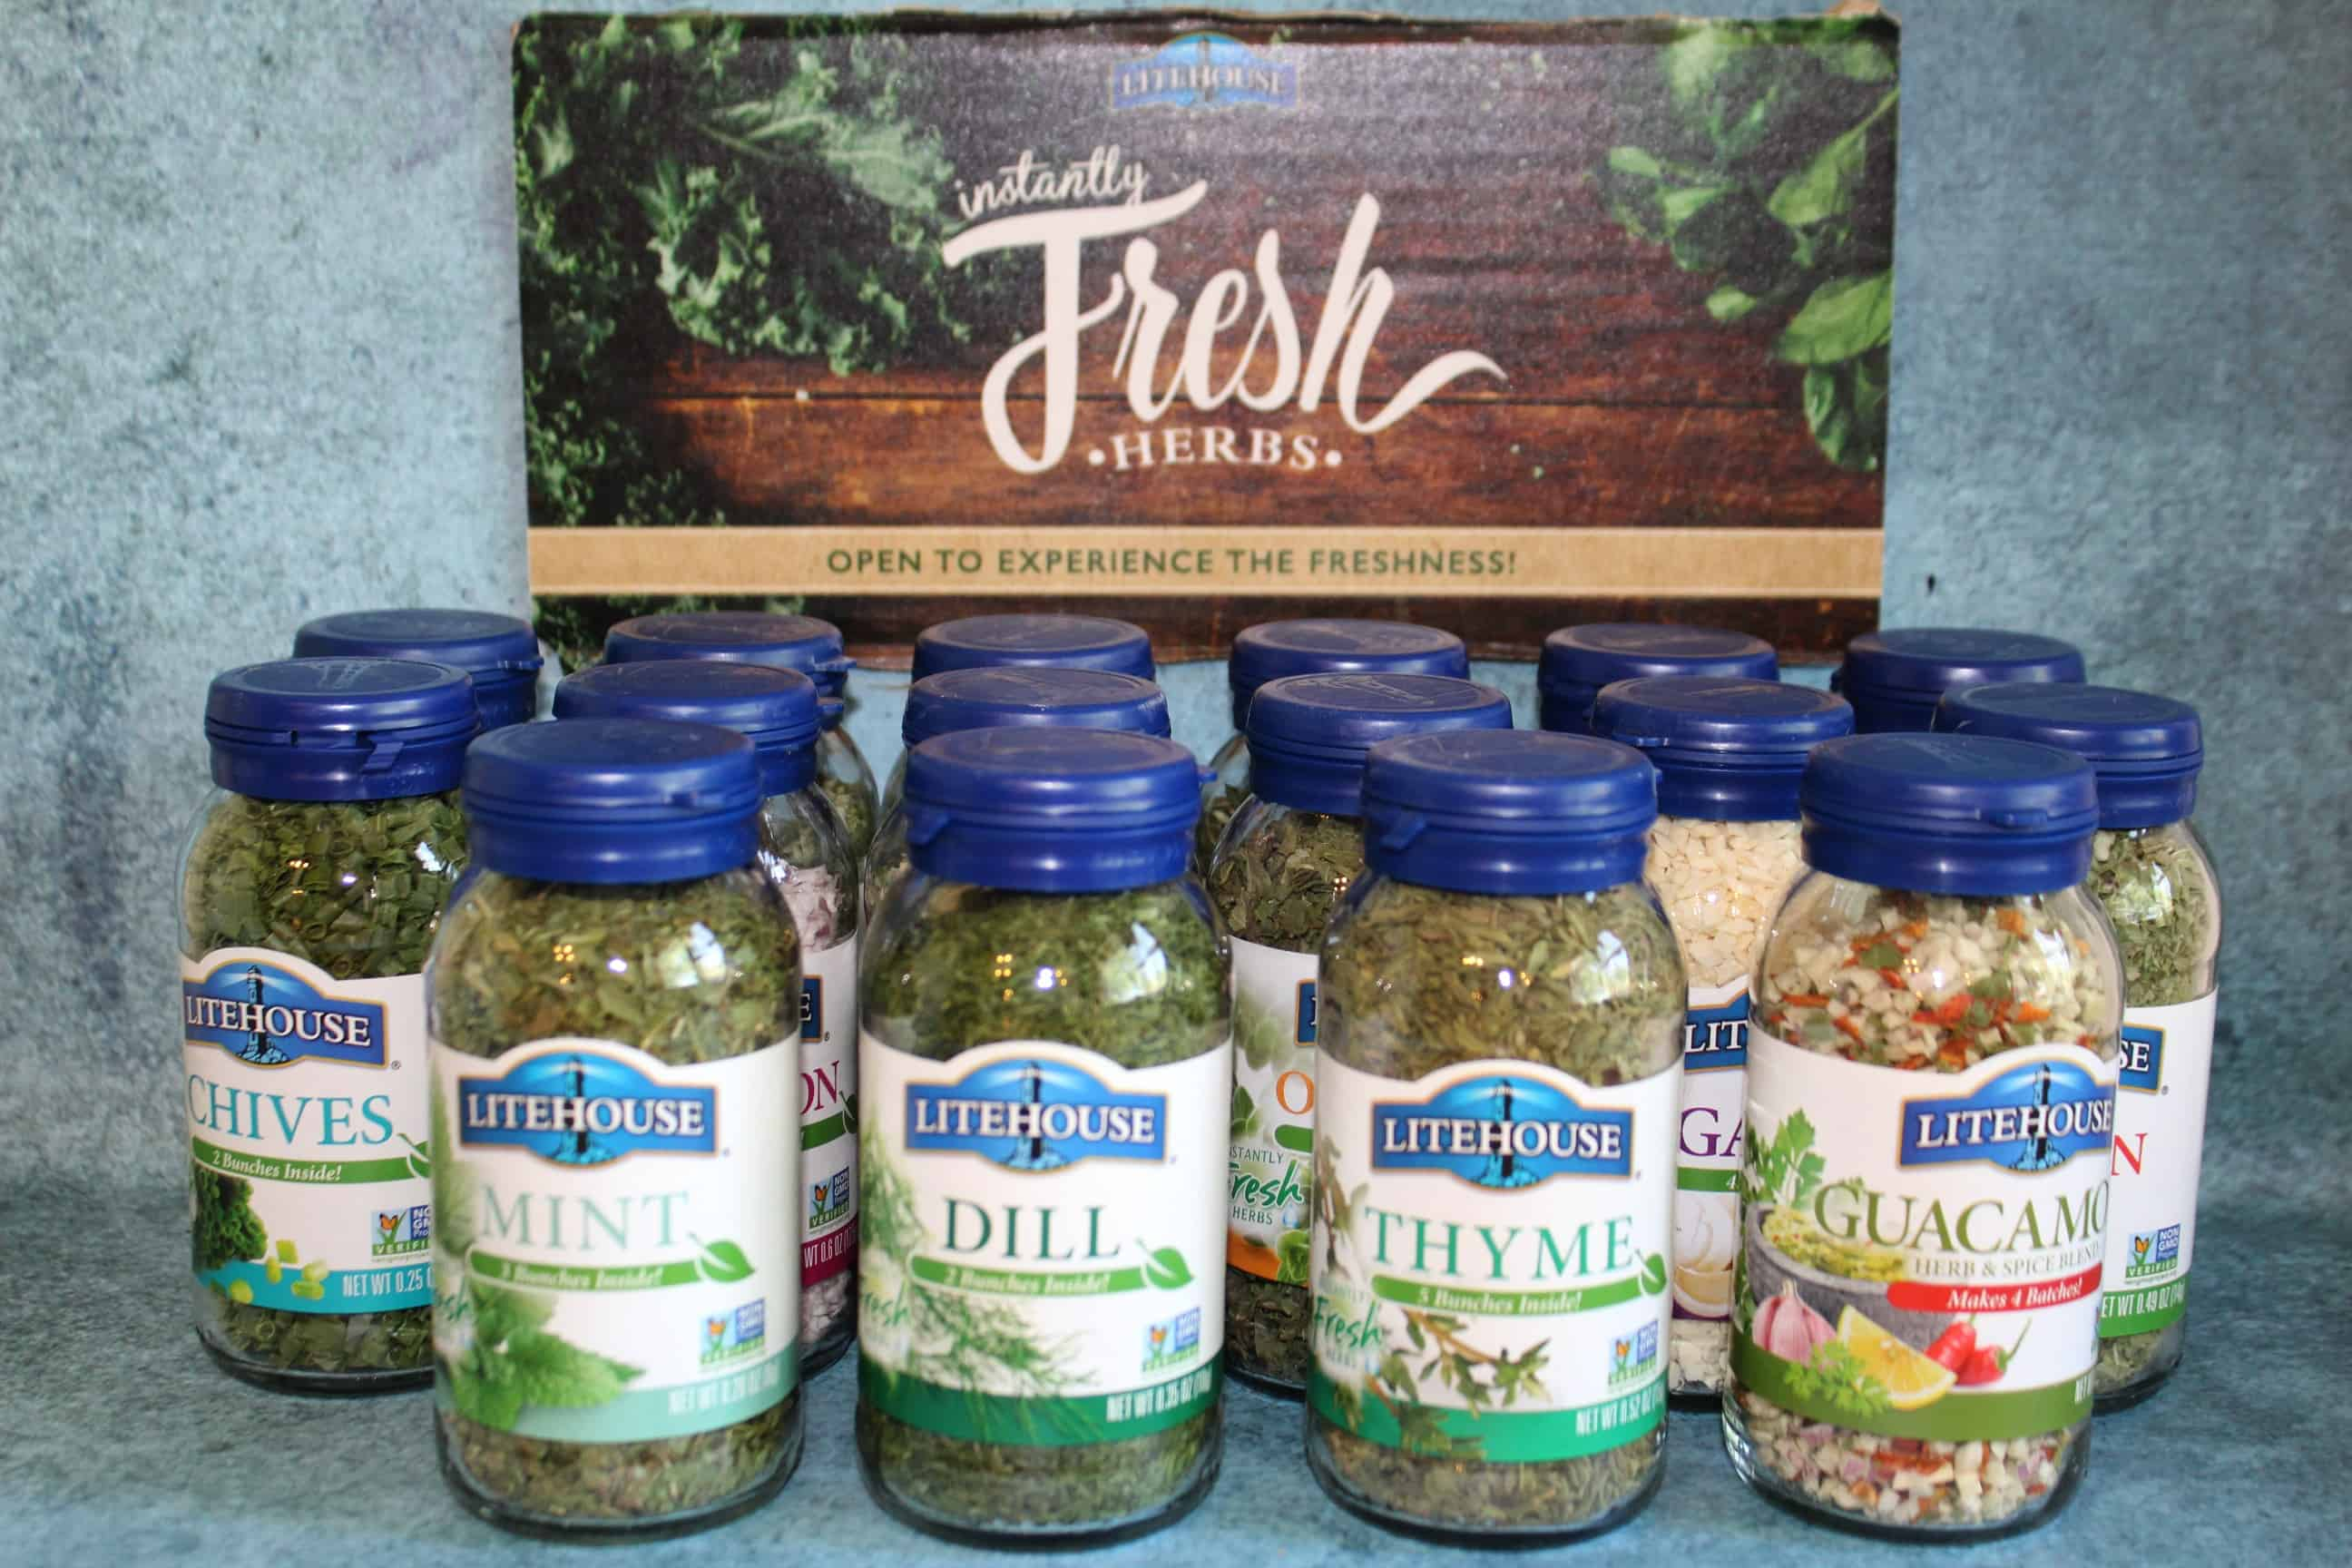 Litehouse Herbs are gluten free, have no preservatives and require no refrigeration